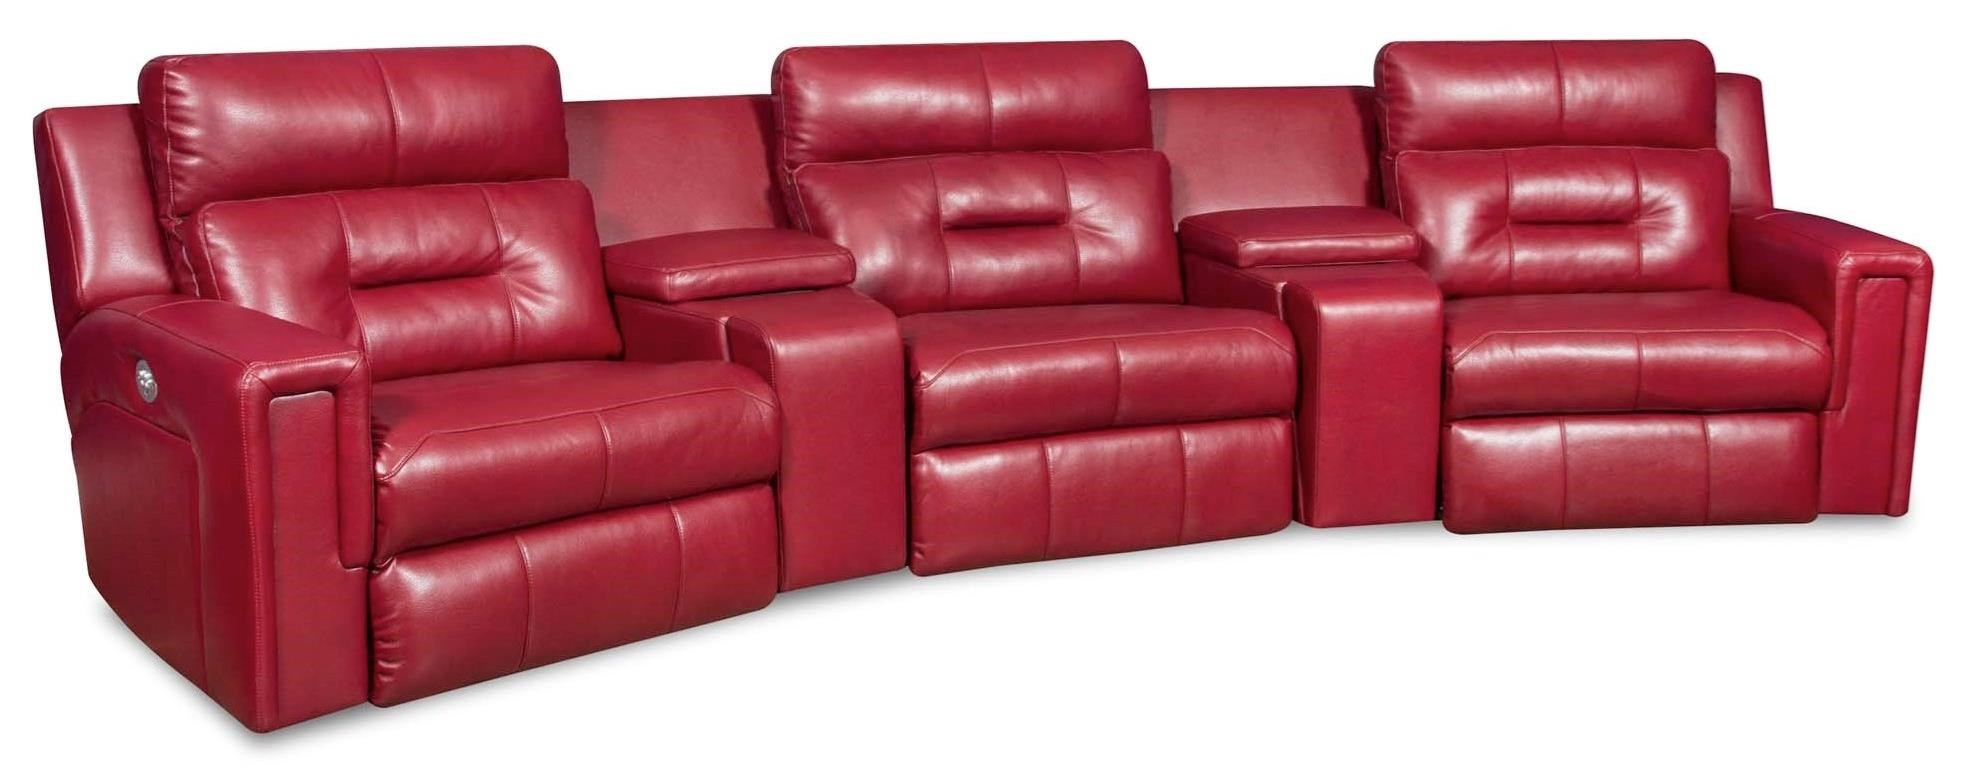 Southern Motion Excel Power Operated Theater Seating with 3 Seats - Item Number: 866-05P+45+90P+45+06P